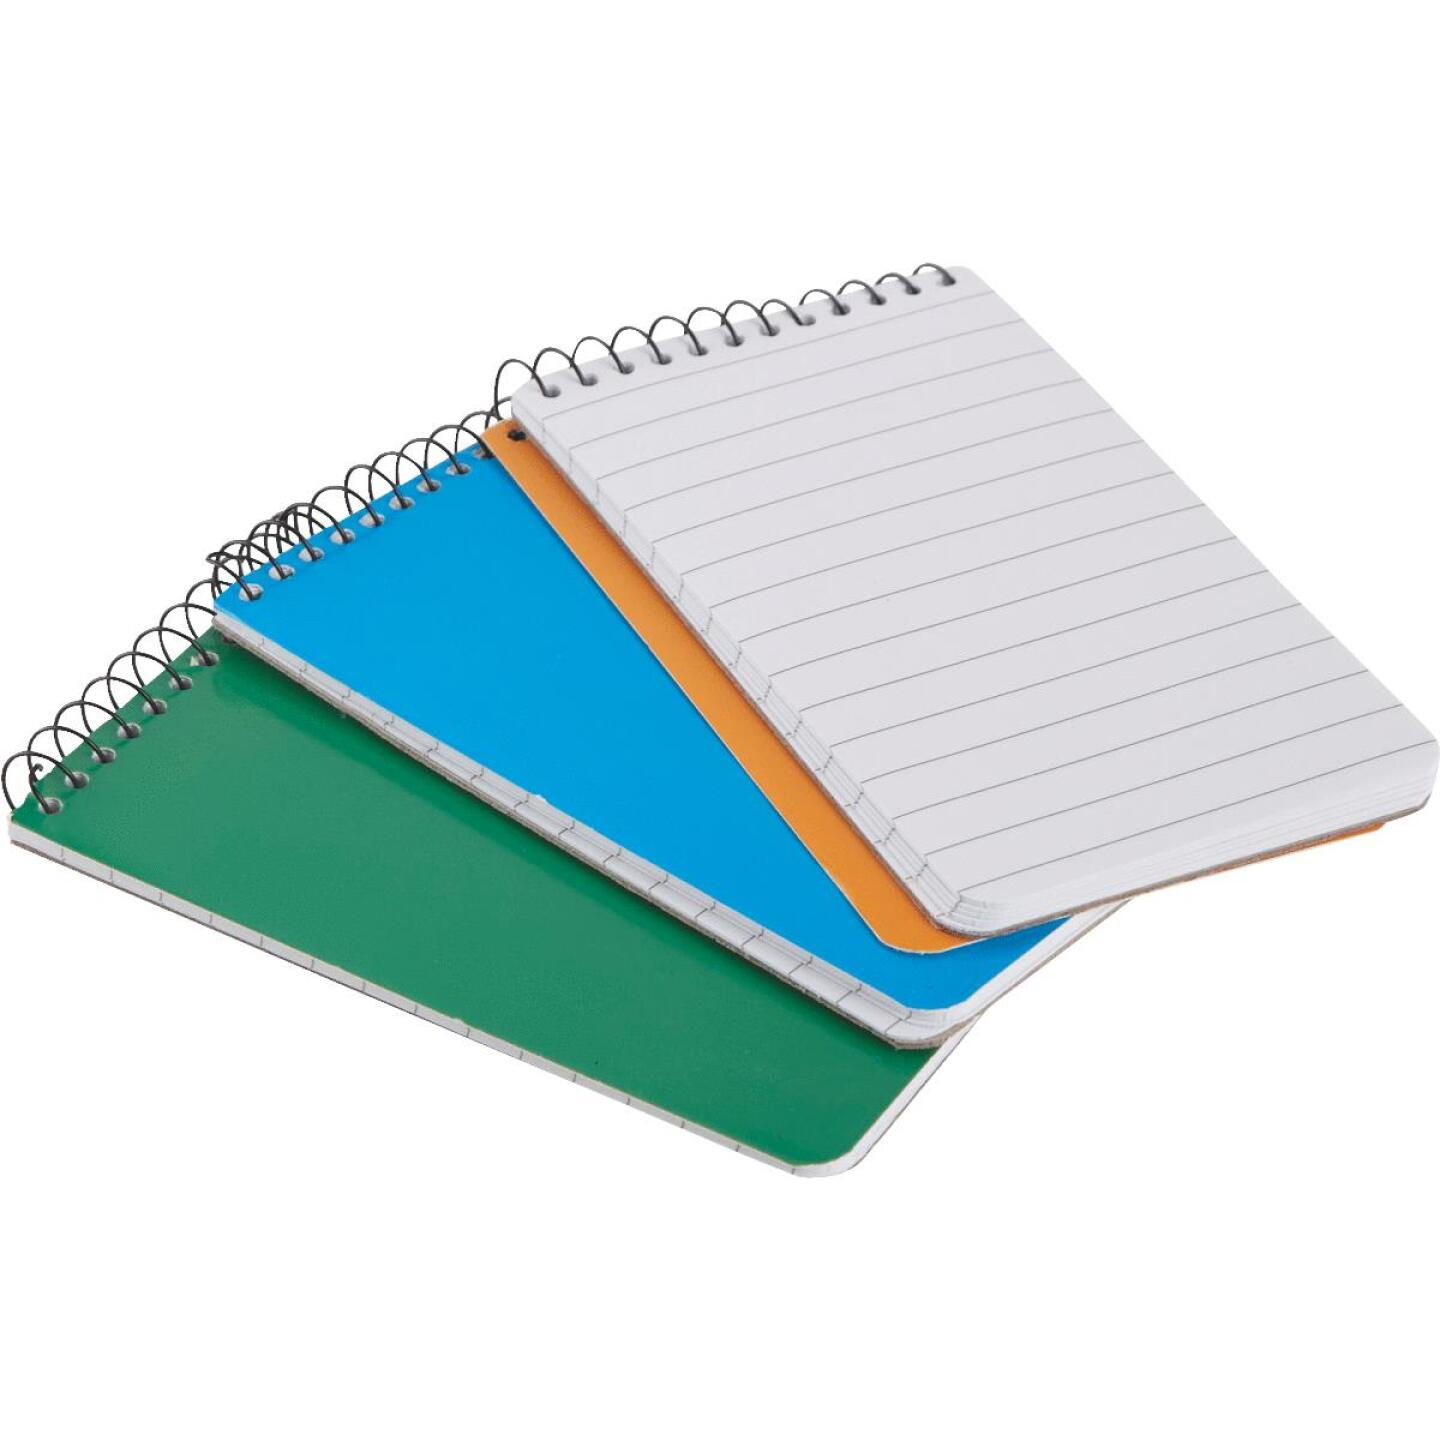 Smart Savers 3 In. x 5 In. White 50-Sheet Top Spiral Bound Memo Pad (3-Pack) Image 4